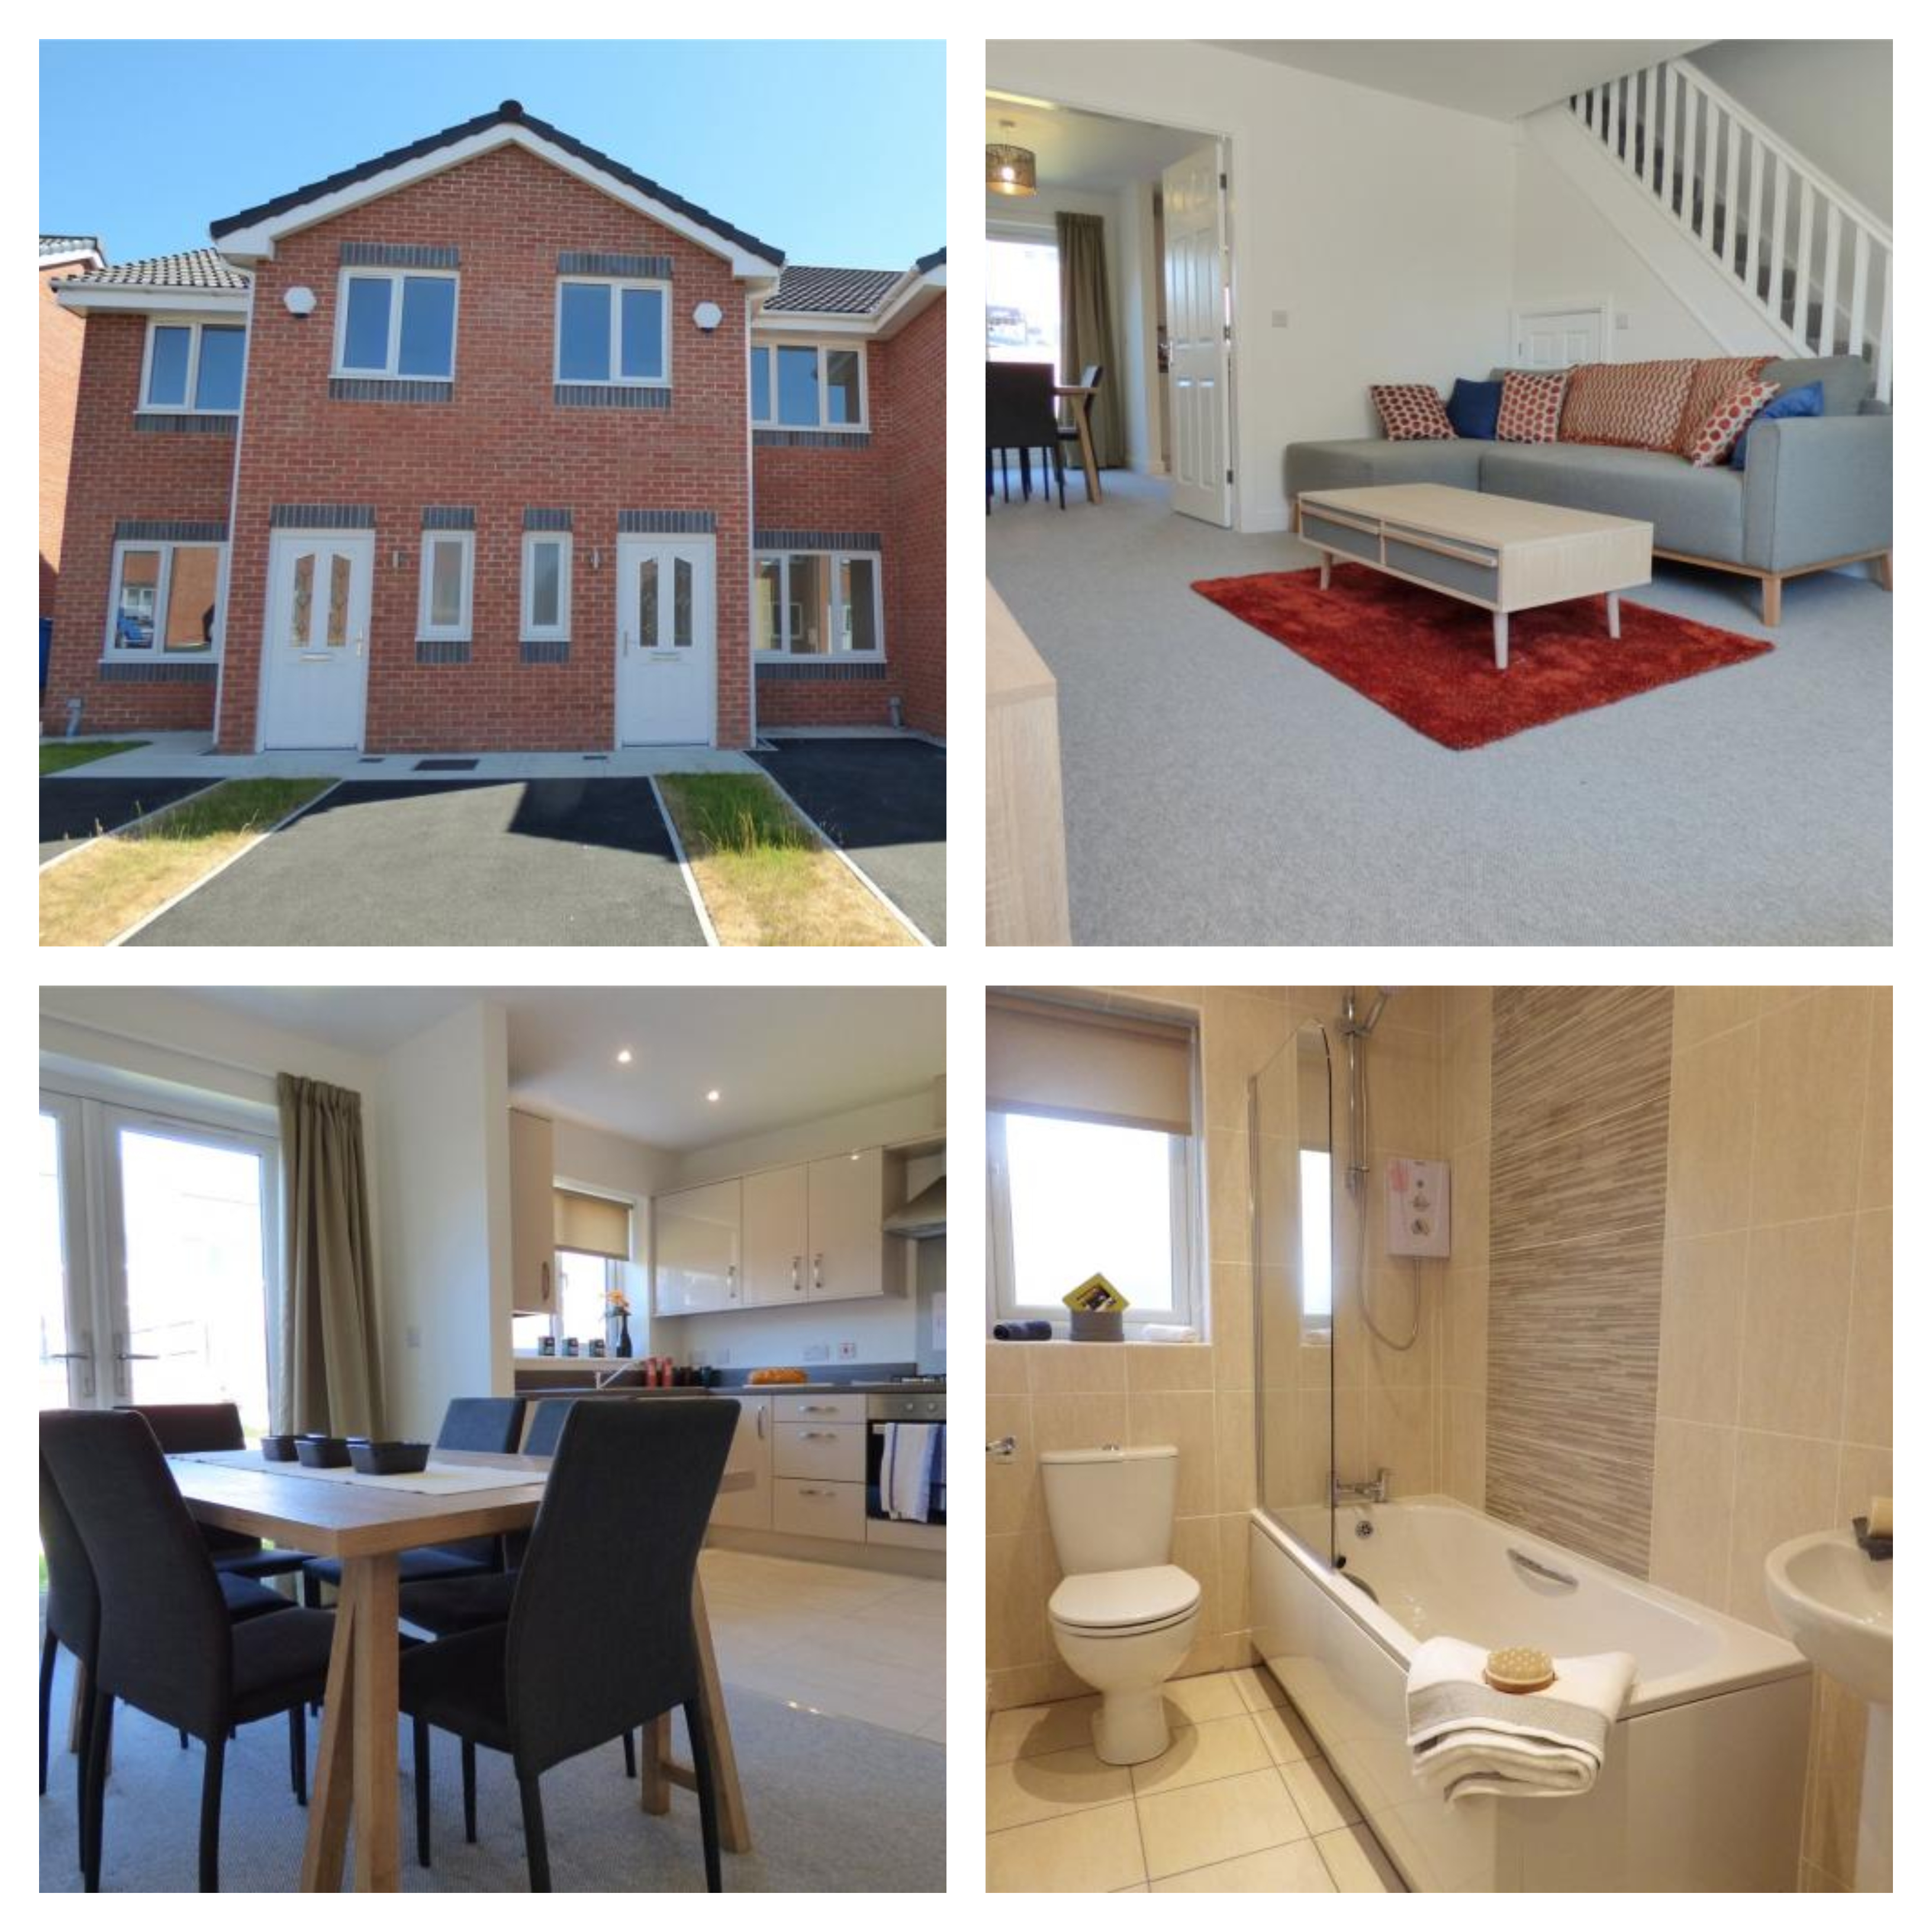 Our Home Of The Week And More From Our New Homes Department